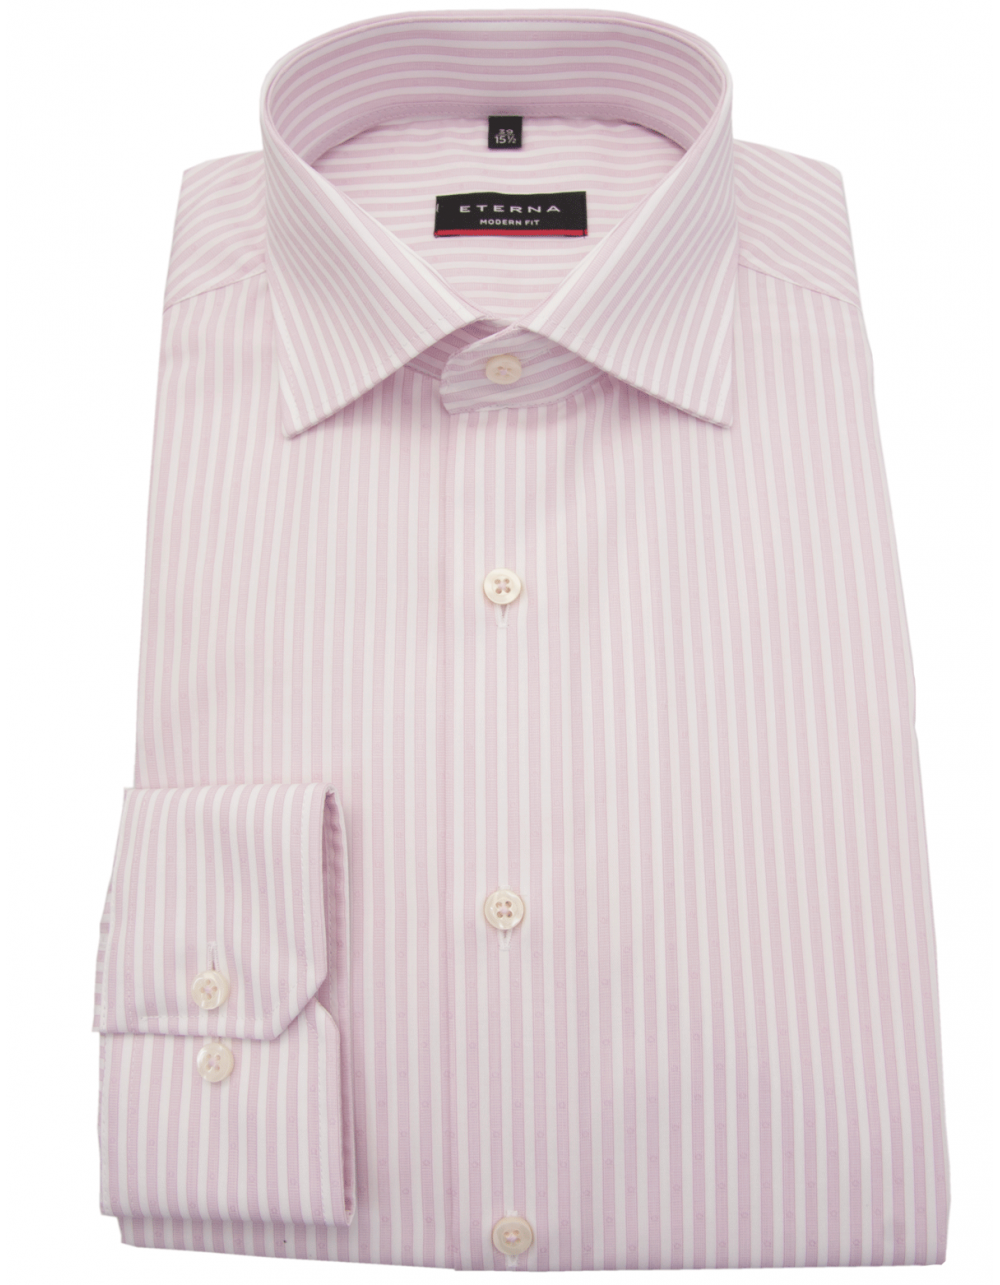 Eterna pink striped shirt